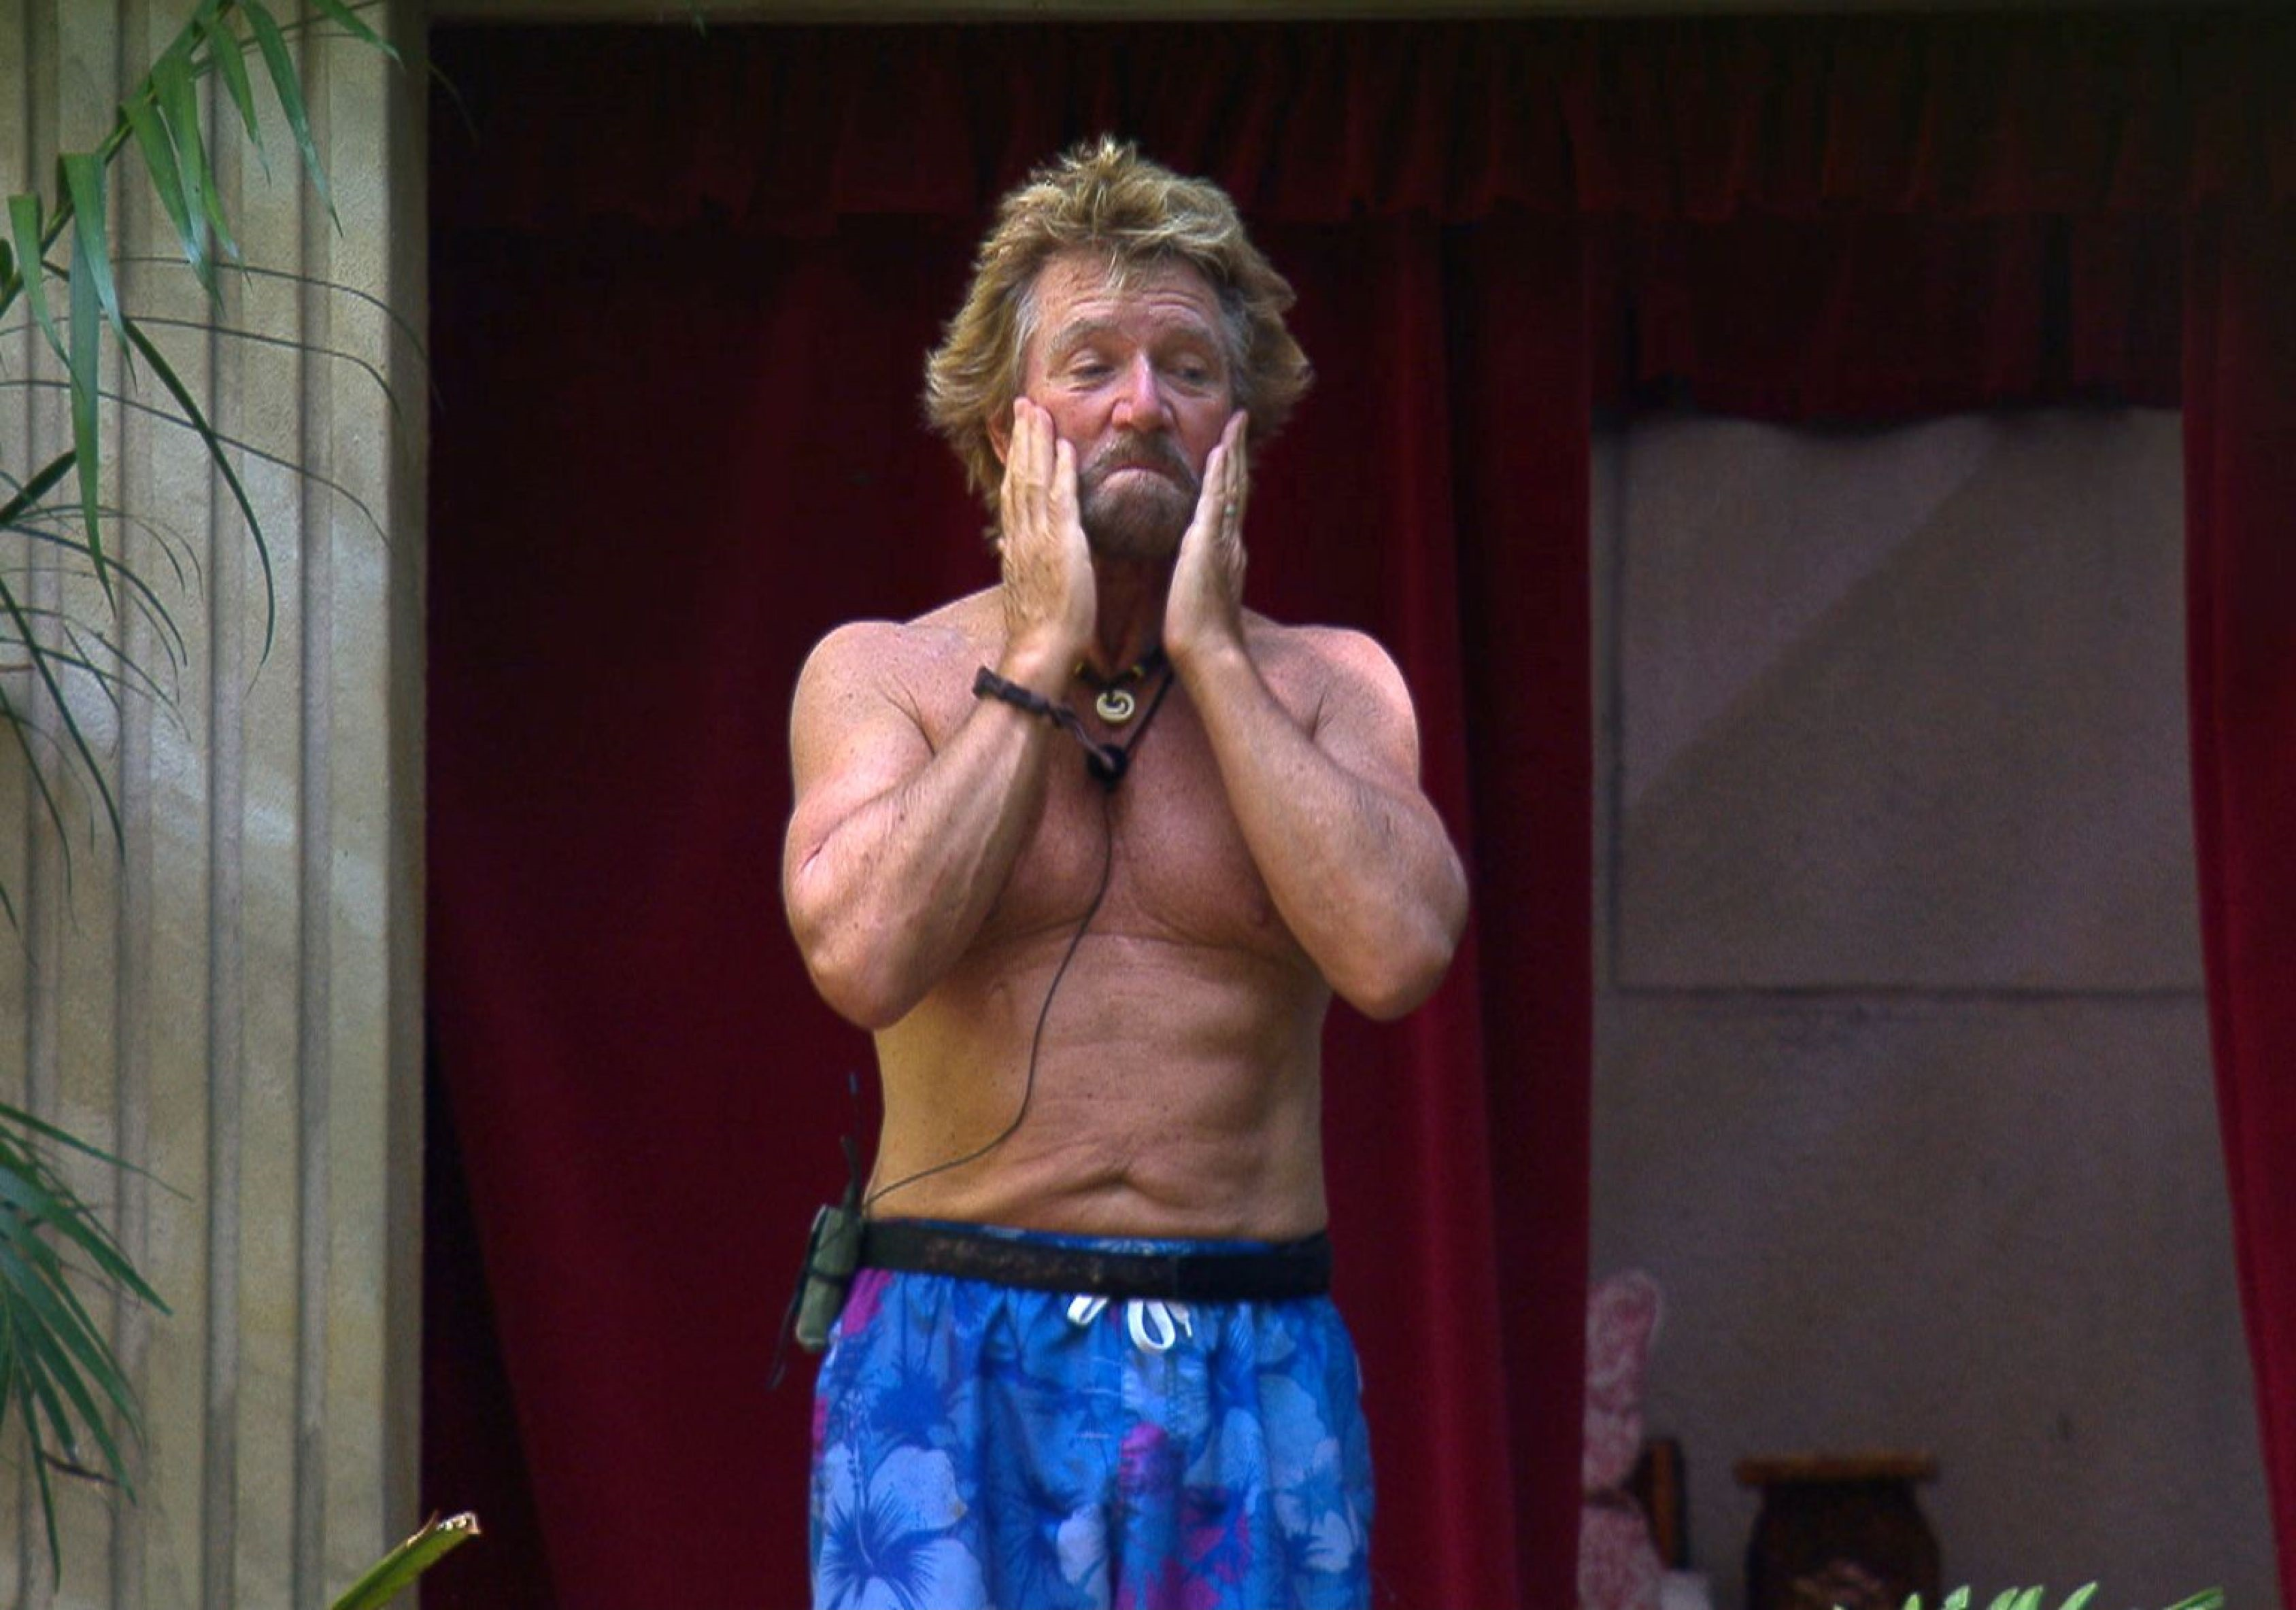 'I'm a Celebrity... Get Me Out of Here!' TV Show, Series 18, Australia - 25 Nov 2018